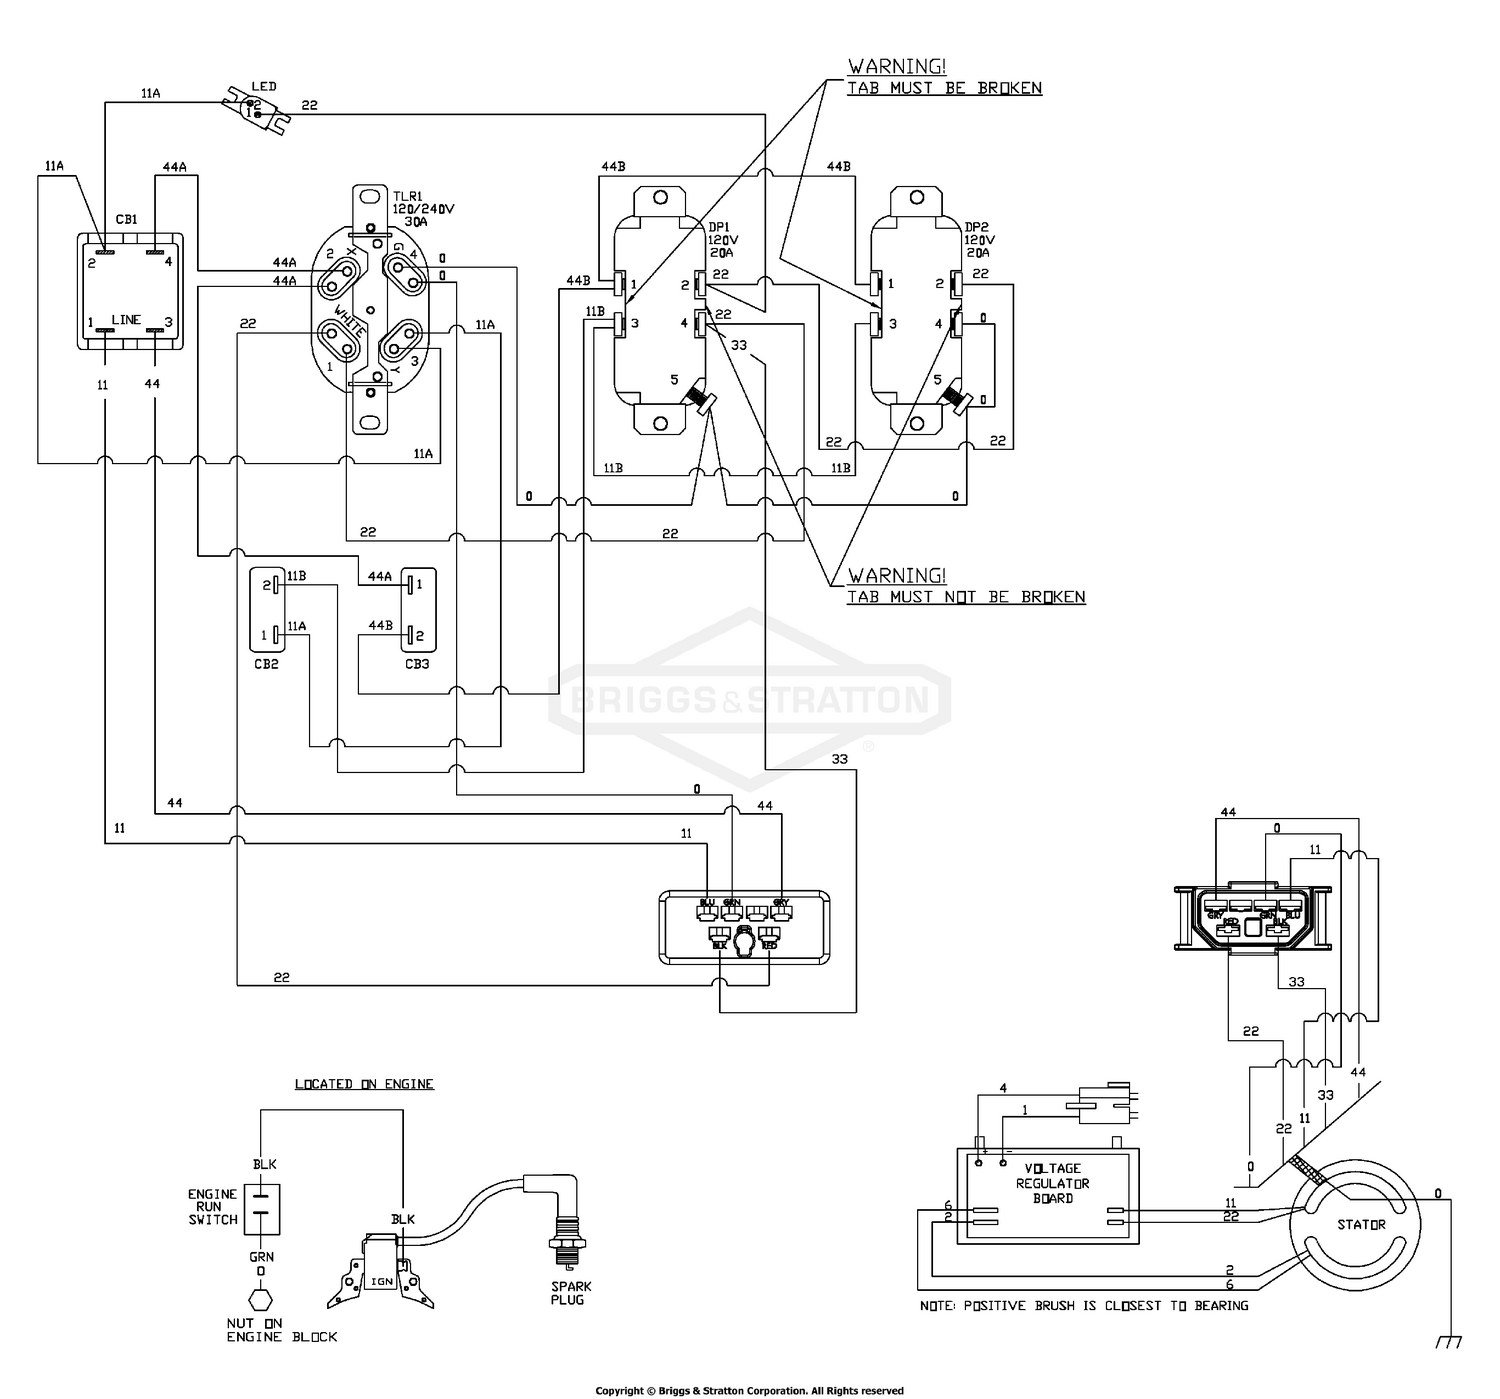 2008 Wildfire R8 Scooter Wiring Diagram - Trolling Motor Plug Wiring Diagram  3 Wire Connecter | Bege Wiring Diagram | Wildfire Scooter Wiring Diagram |  | Bege Wiring Diagram